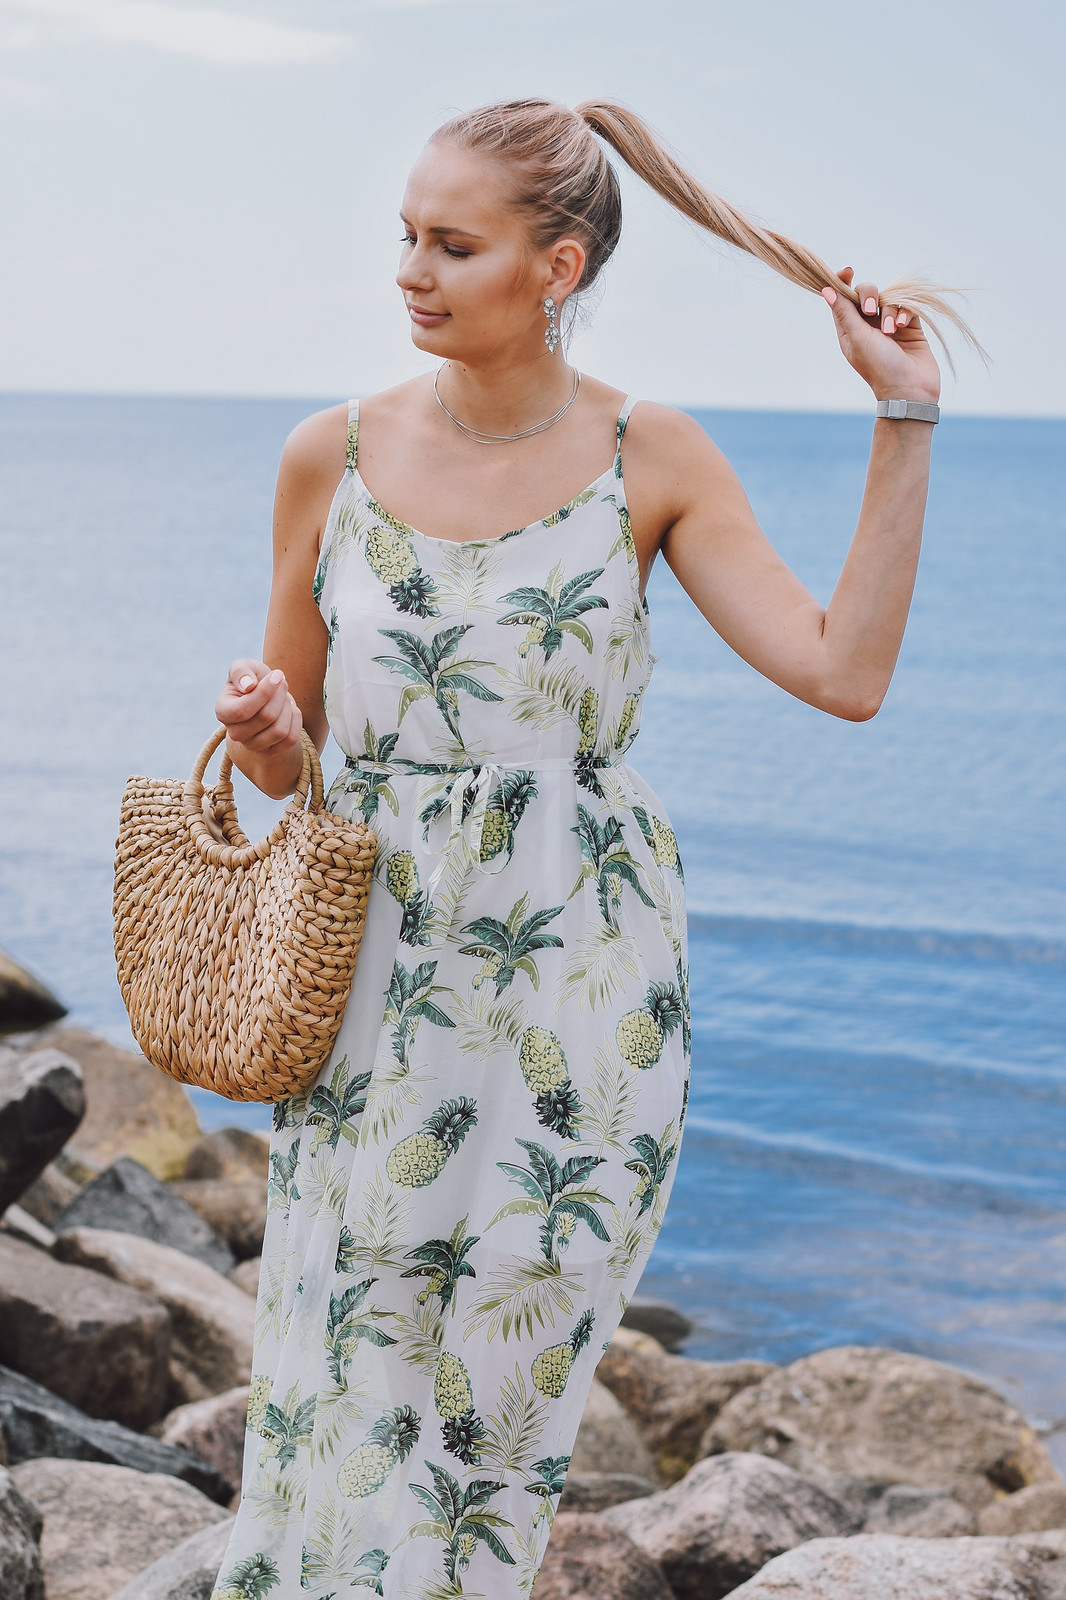 Pineapple print dress outfit